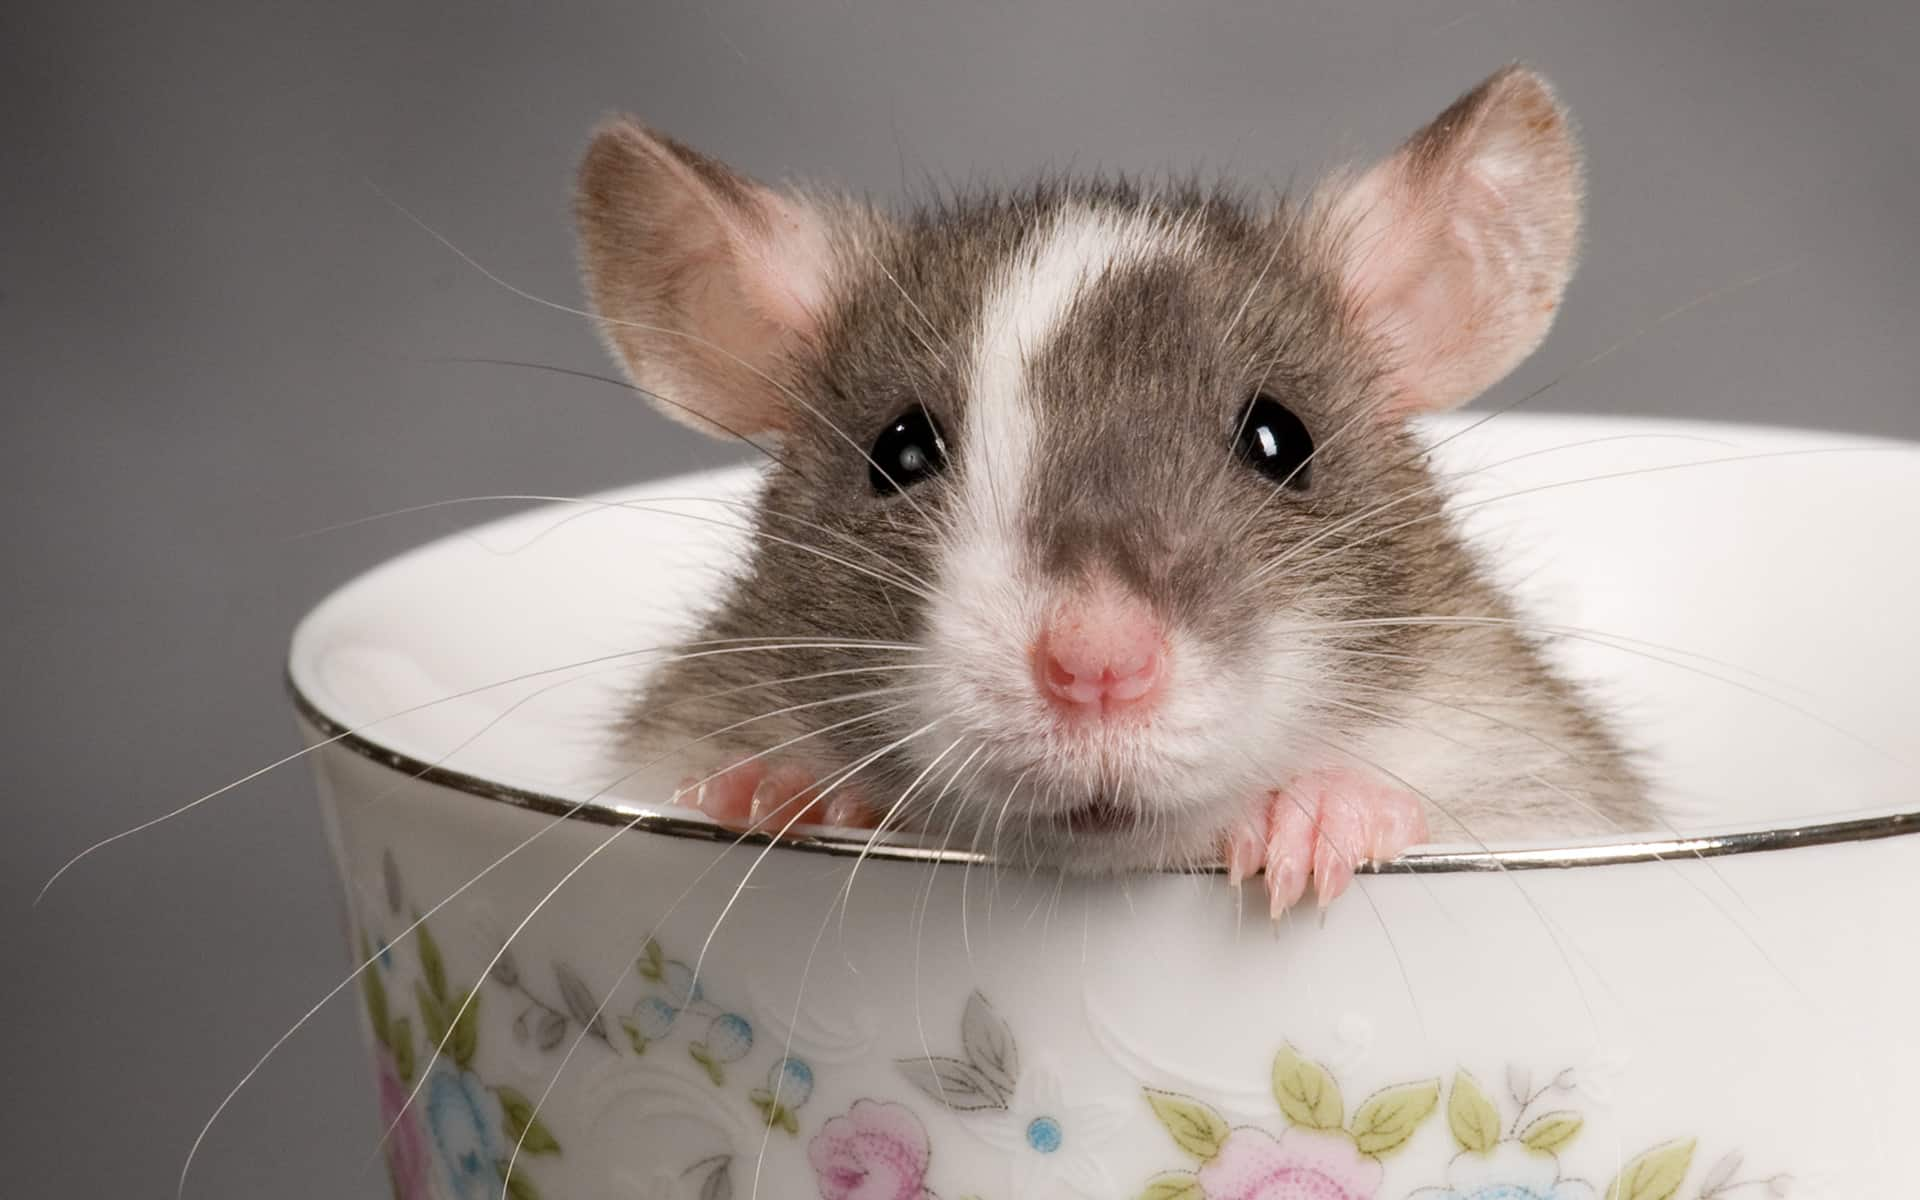 How to get rid of rats in my house